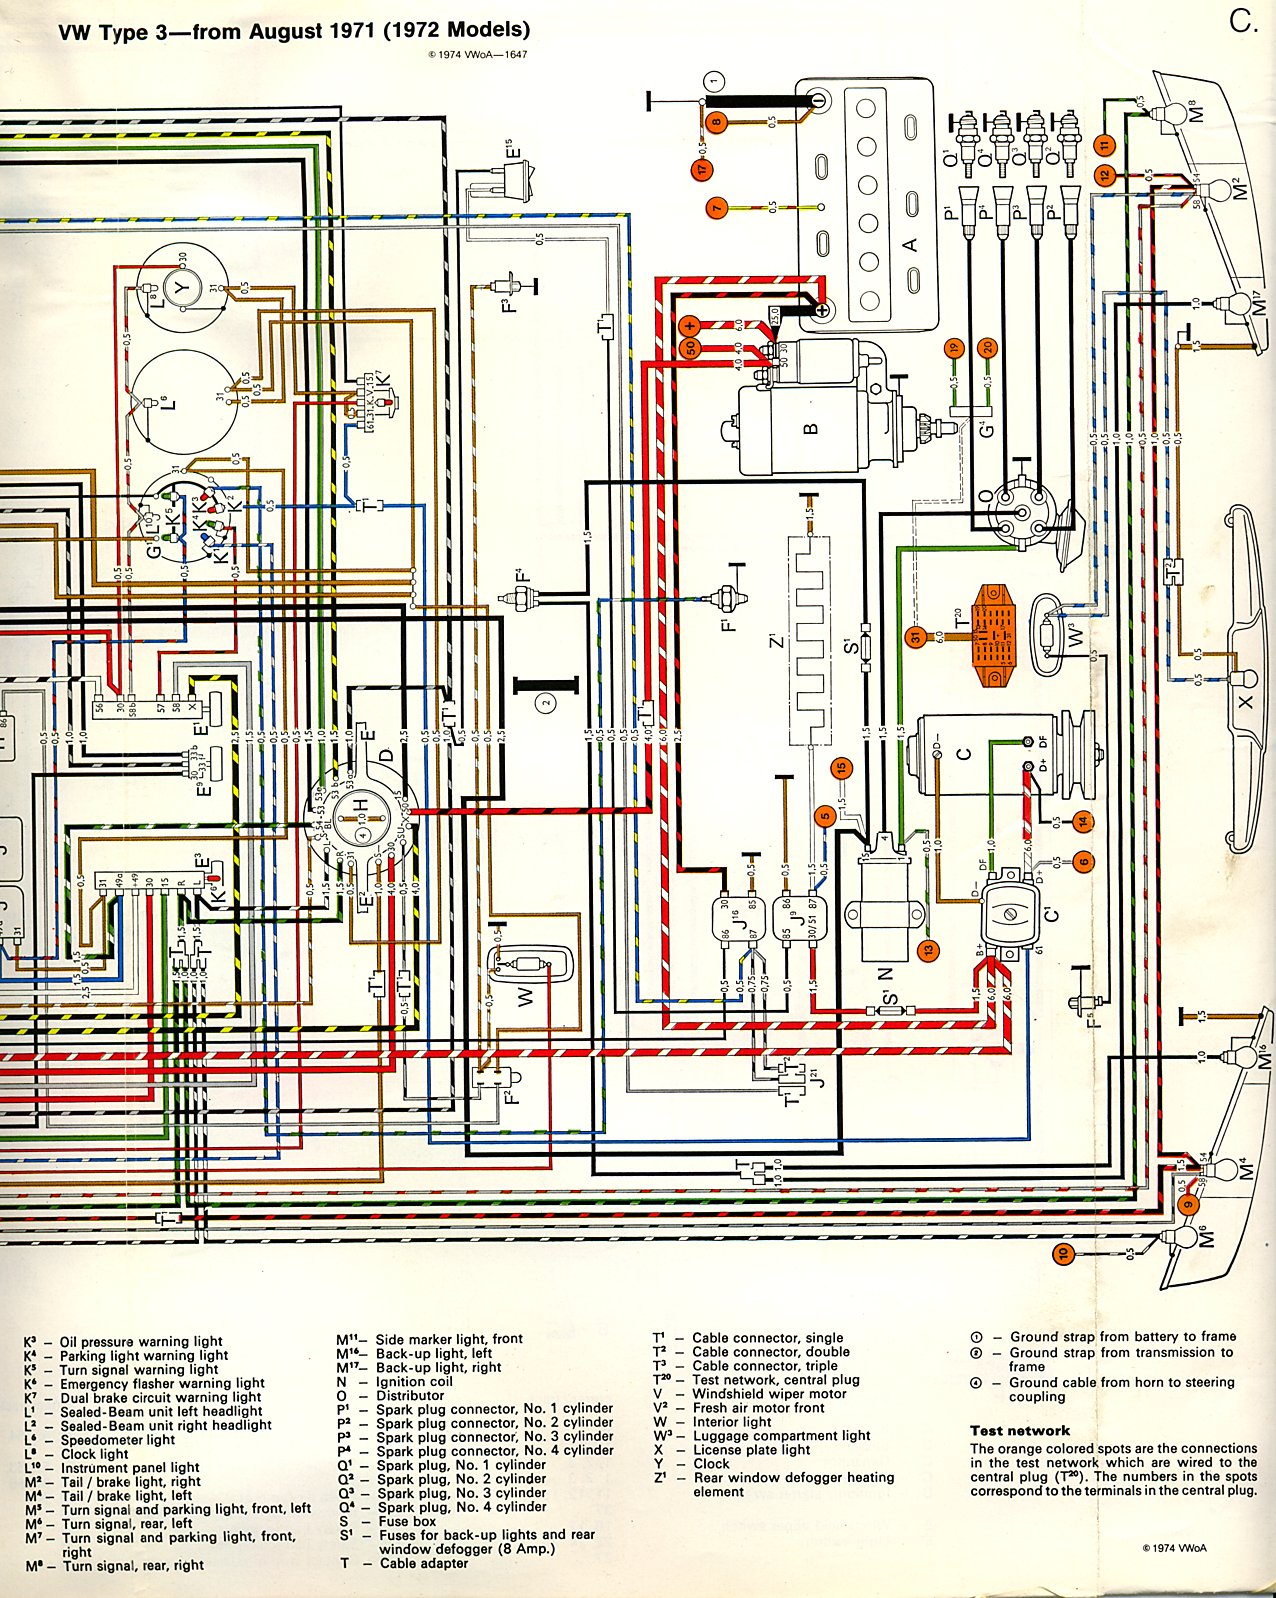 2EF7E 1971 Volkswagen Coil Wiring | Digital Resources on vw bus wiring diagram, type 1 vw engine diagram, vw bug wiring diagram, vw gti wiring diagram, vw r32 wiring diagram, 72 vw wiring diagram, vw thing wiring diagram, vw 1600 engine diagram, jaguar e type wiring diagram, vw engine wiring diagram, vw type 2 wiring diagram, air cooled vw wiring diagram, 1965 vw wiring diagram, vw type 4 wiring diagram, vw jetta wiring diagram, vw alternator conversion wiring diagram, vw ignition wiring diagram, 1973 vw wiring diagram, 1974 vw engine diagram, 68 vw wiring diagram,